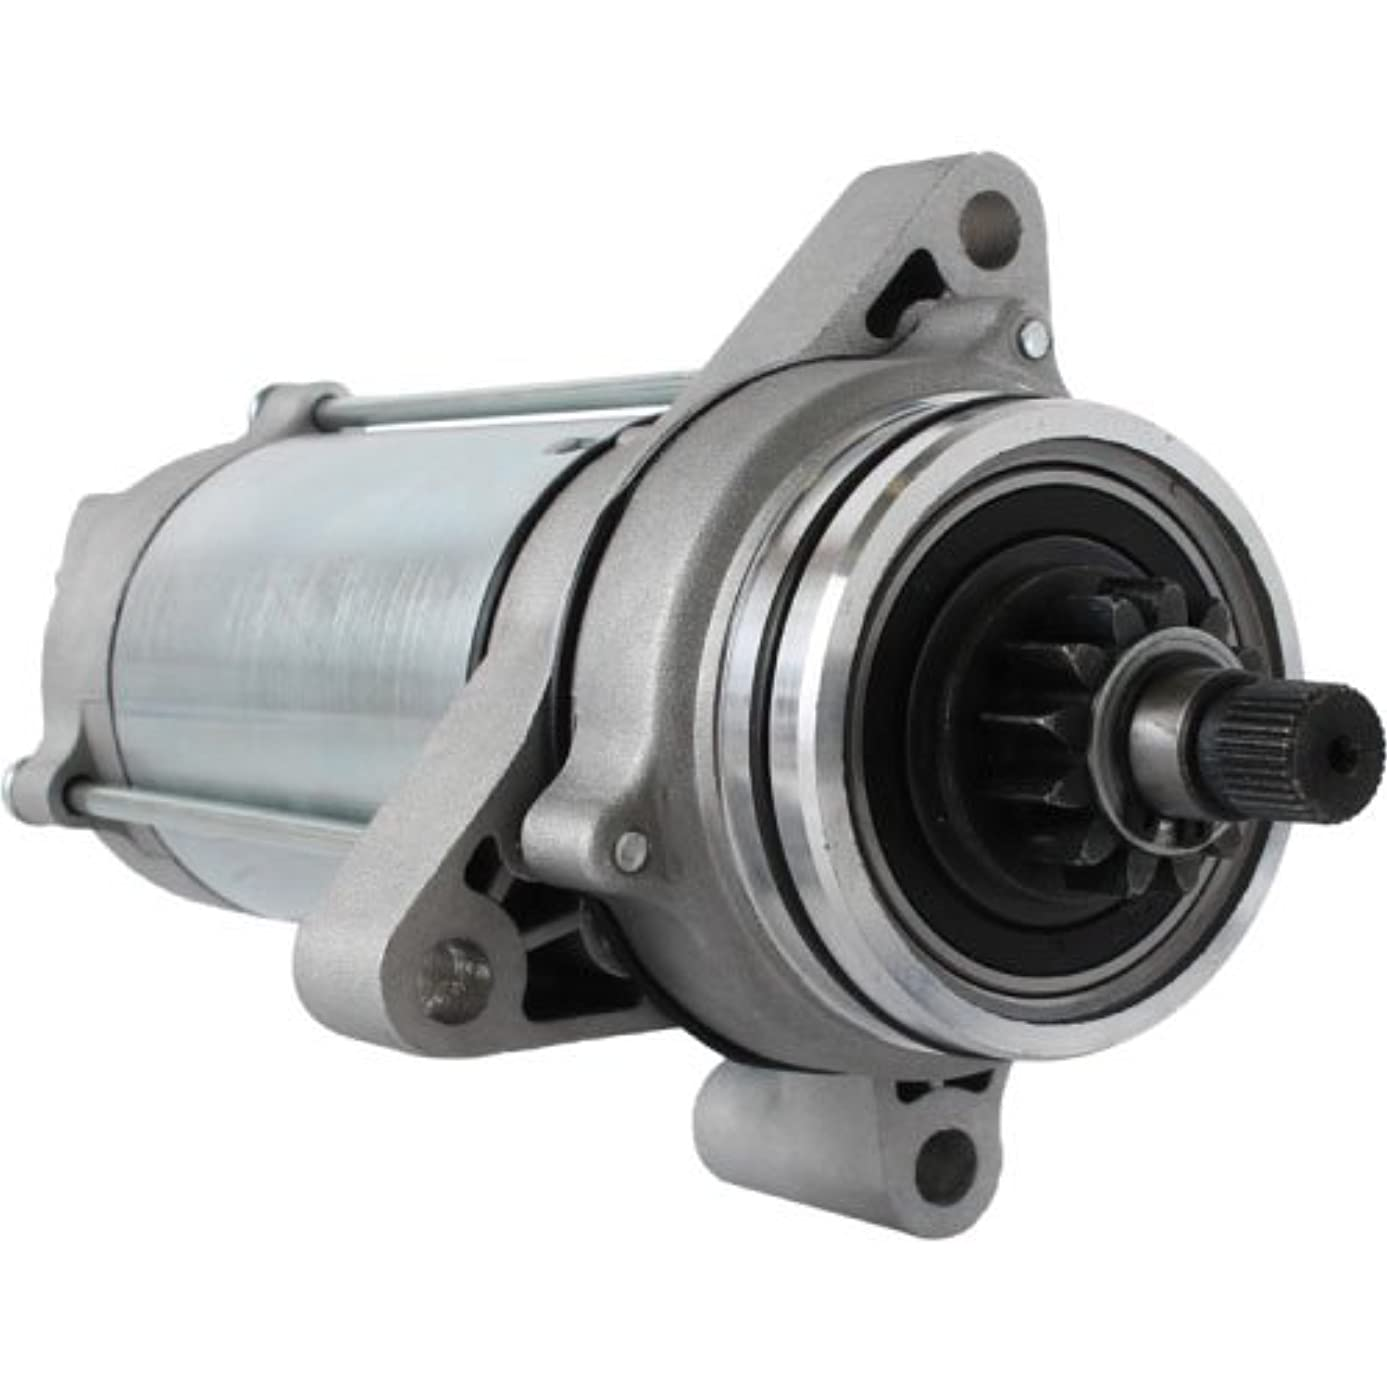 DB Electrical SMU0391 Starter (New For Honda Gl1800 Gl1800A Goldwing Gold Wing 2001 2002 2003 2004 2005 31200-Mca-003 18676)